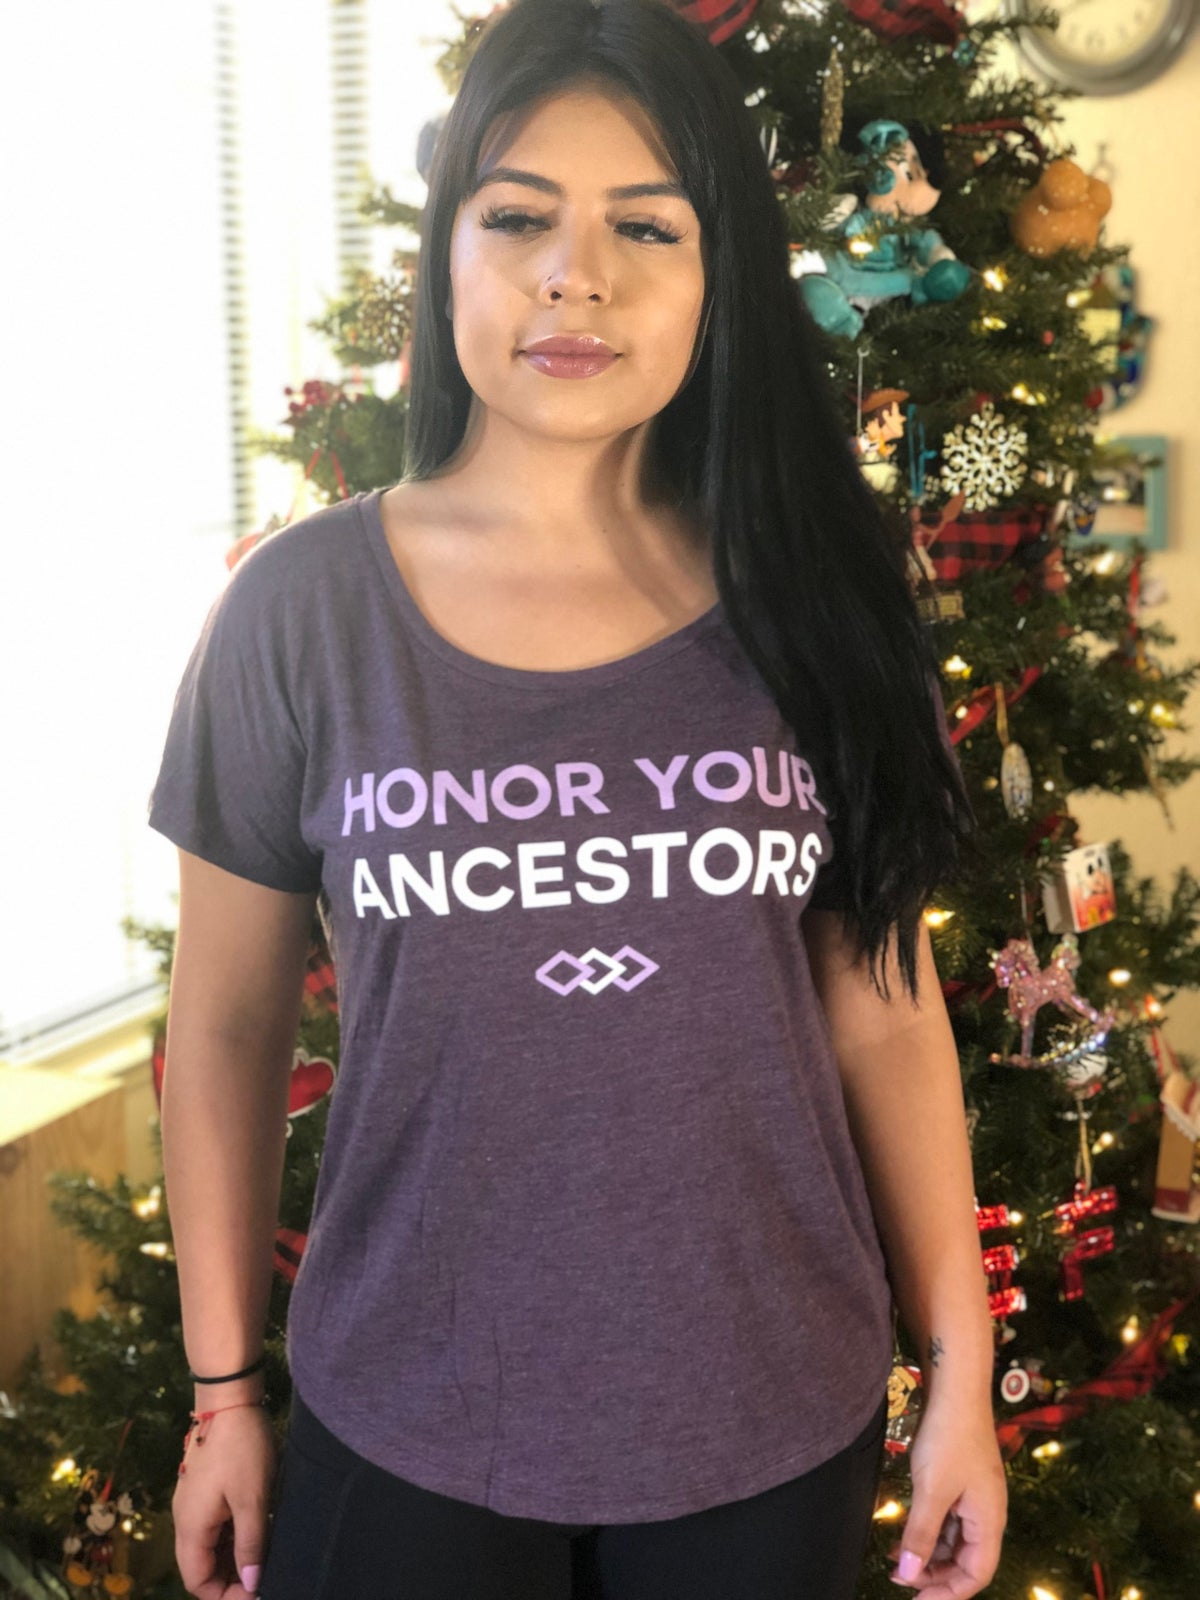 Image of Honor Your Ancestors Women's Shirt (vintage purple)